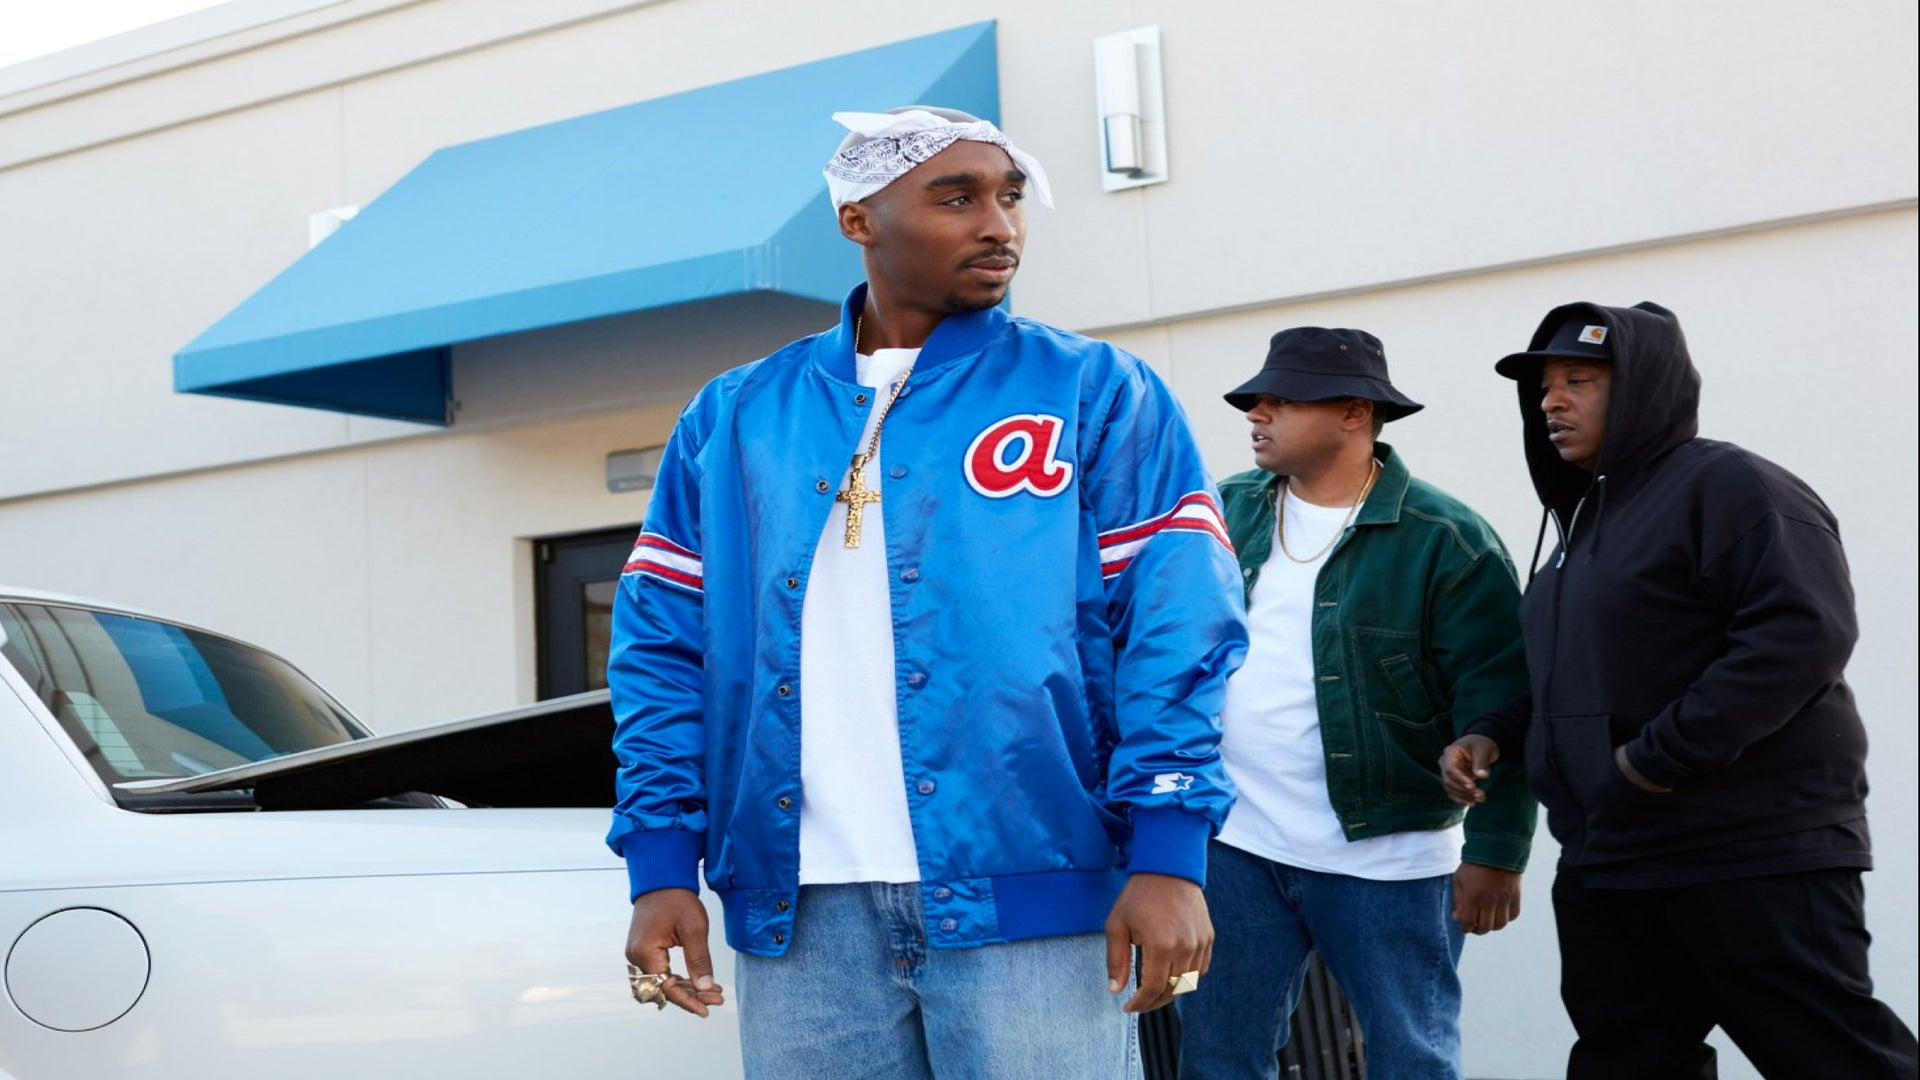 Tupac Biopic Director Benny Boom Presents a Cast That's Sure to Shine